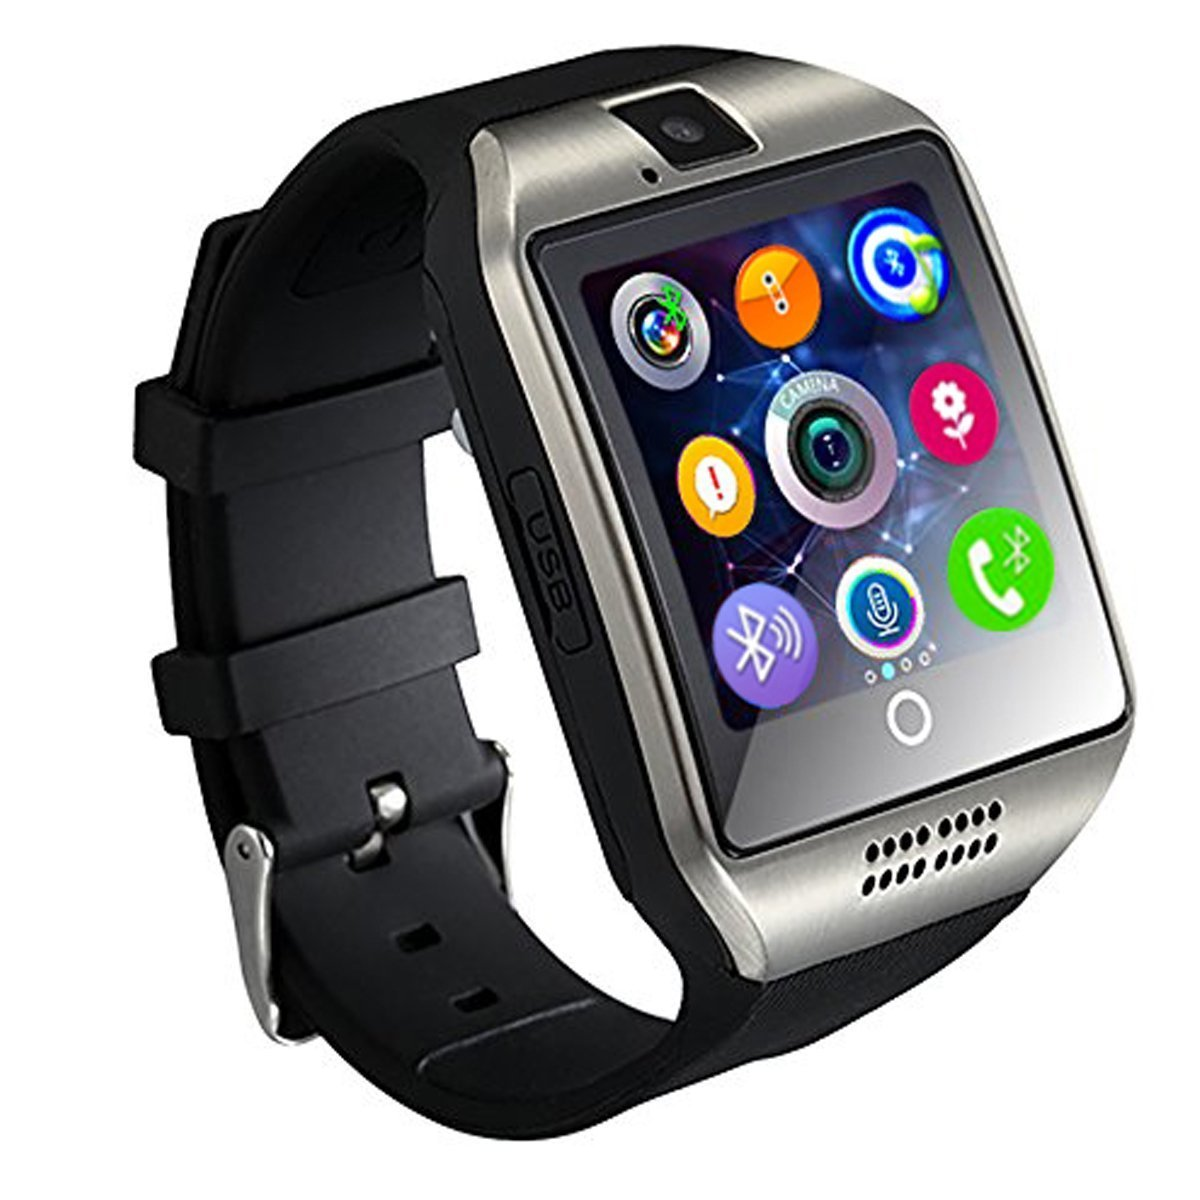 watches wifi smart camera android capacitive arrival watch from apps in gps pedometer quadband touchscreen item new cell consumer phone sports